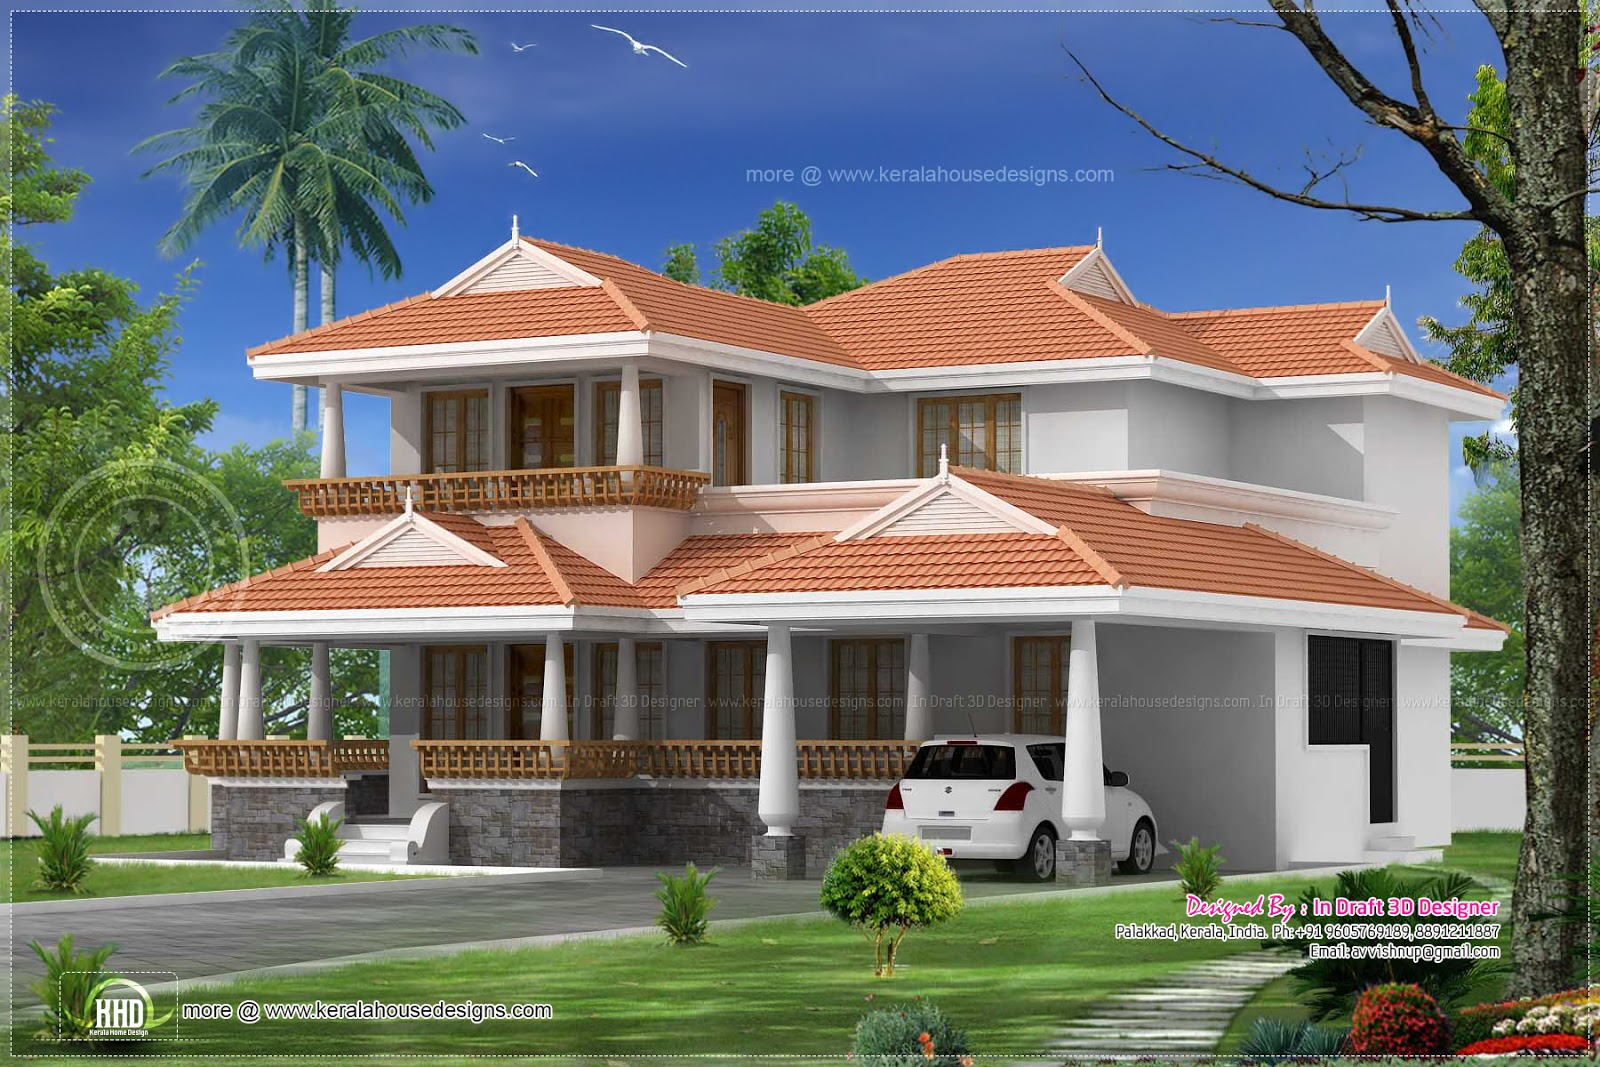 4 bed room kerala traditional villa 2615 sq ft kerala for 3000 sq ft house plans kerala